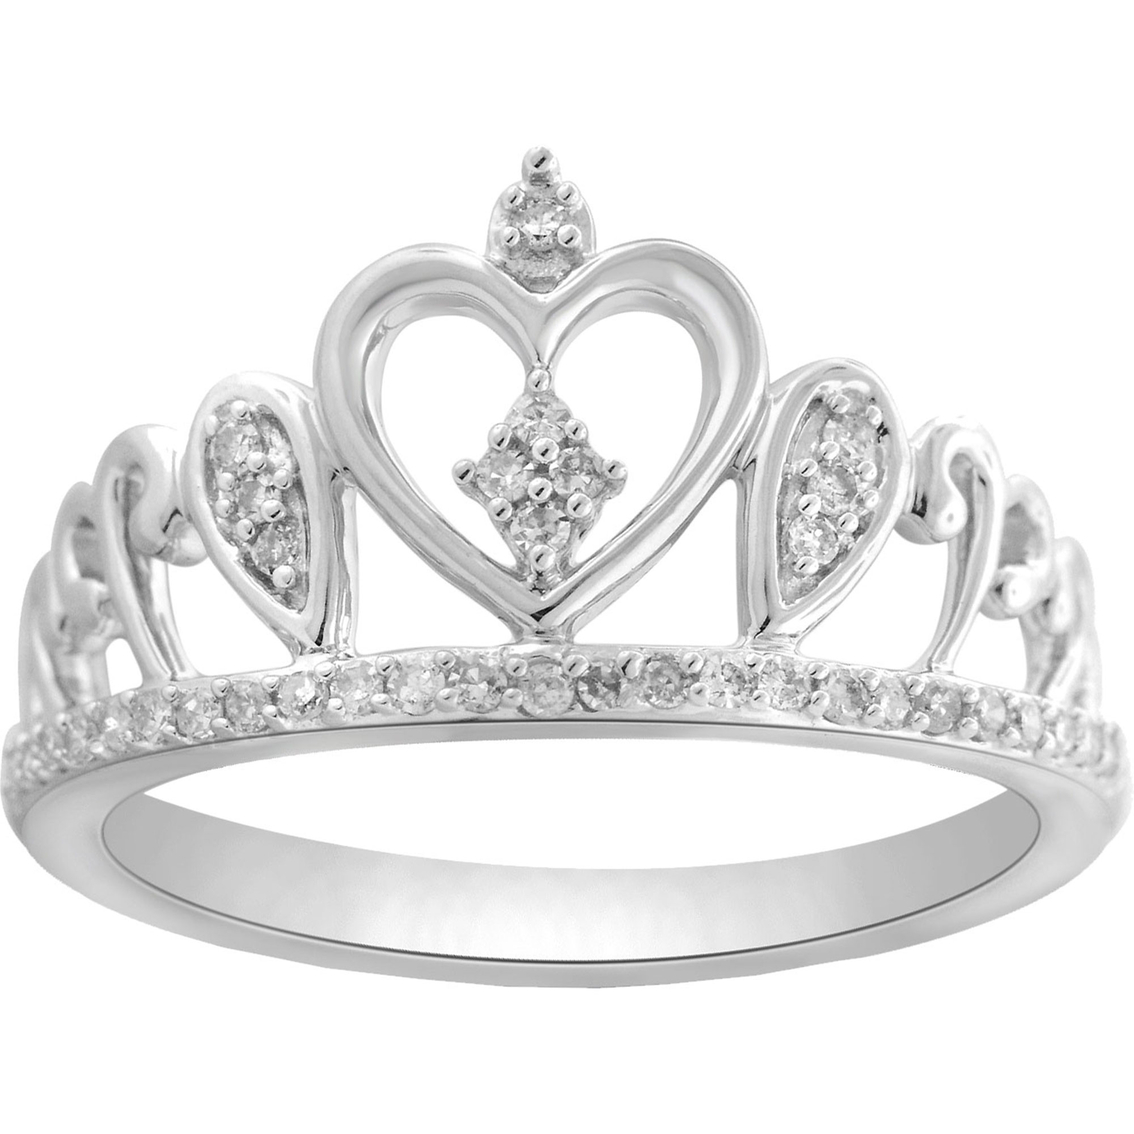 Crown Diamond Engagement Rings